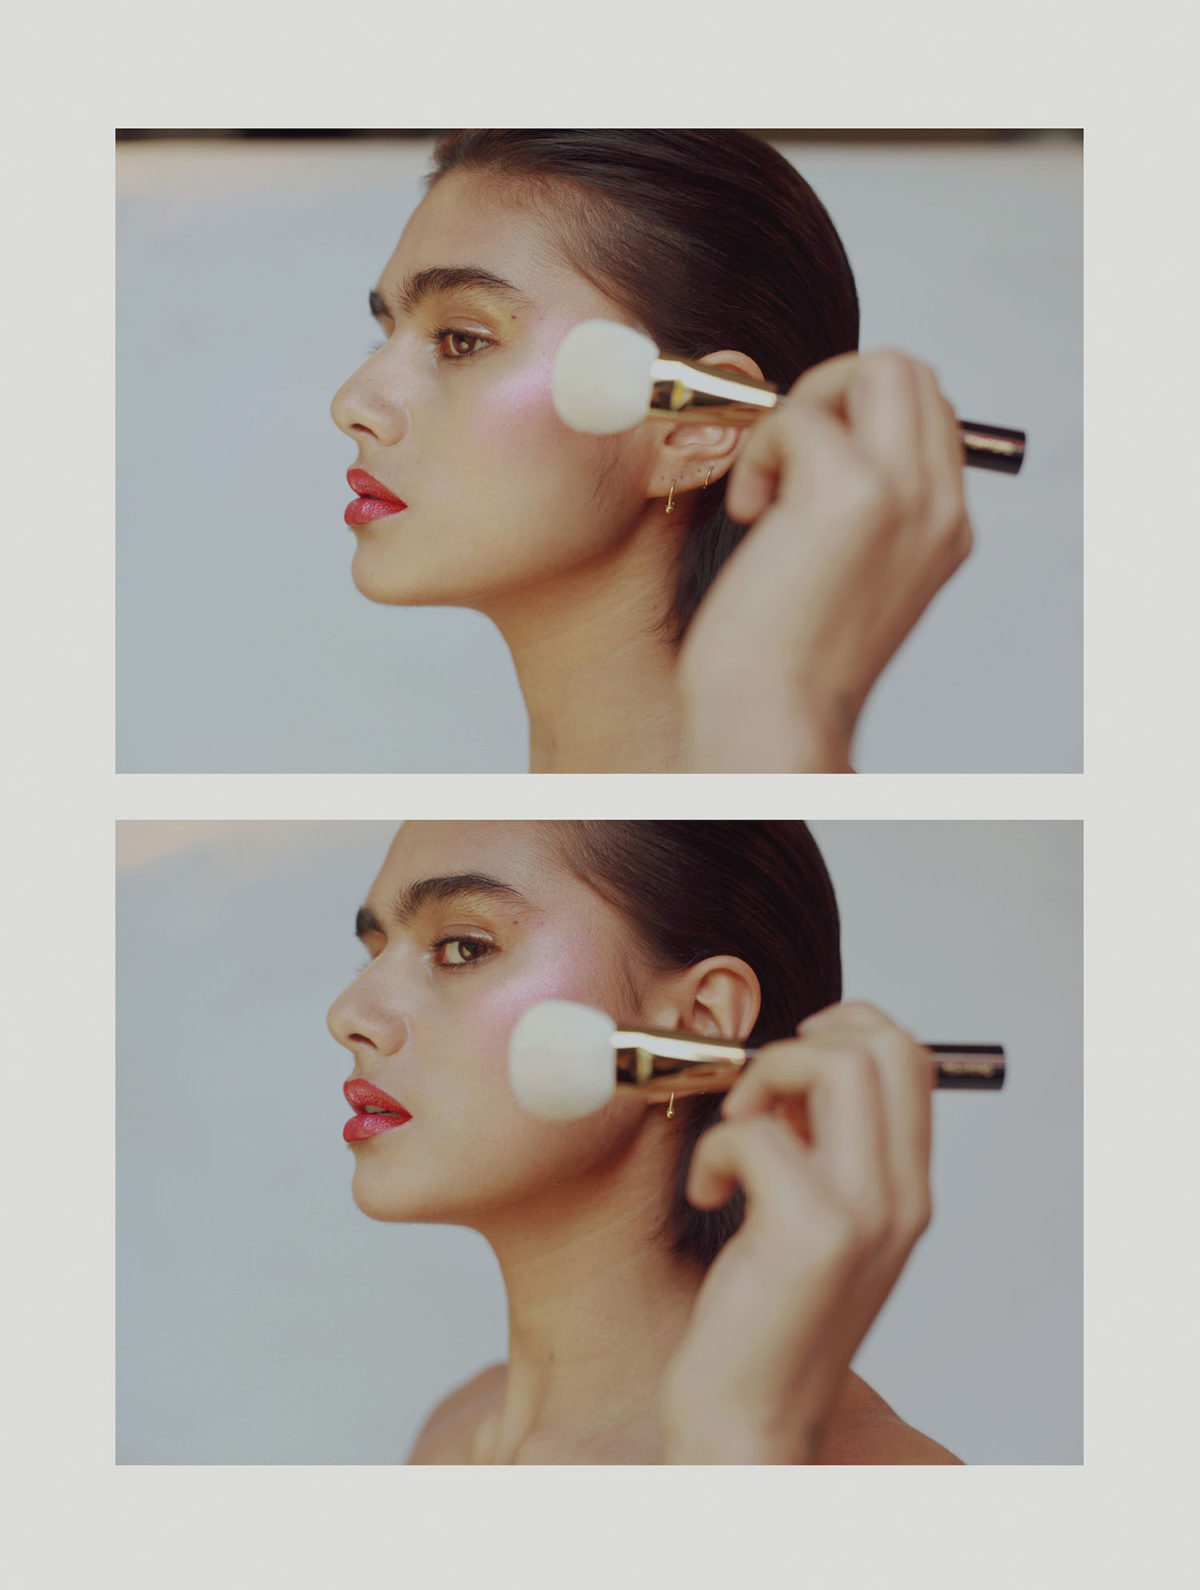 THIS PEACHY EDITORIAL WILL PROVIDE YOU THE SUMMER BEAUTY INSPIRATION YOU NEED